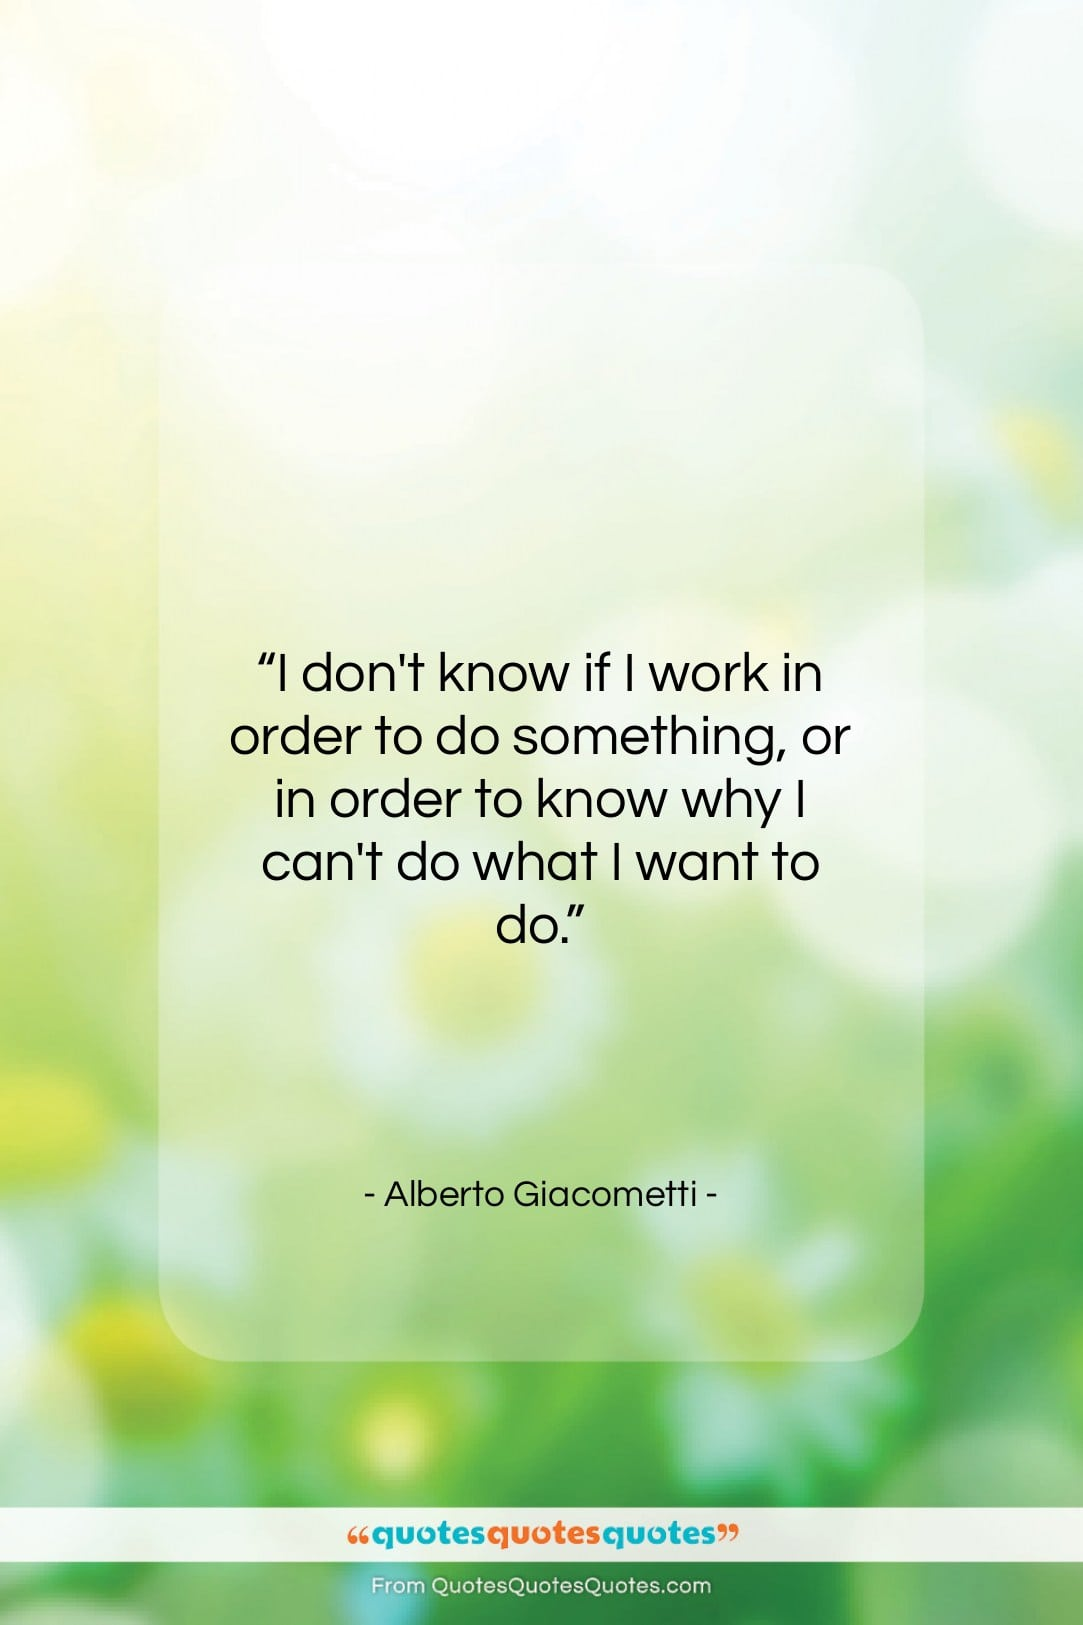 """Alberto Giacometti quote: """"I don't know if I work in…""""- at QuotesQuotesQuotes.com"""